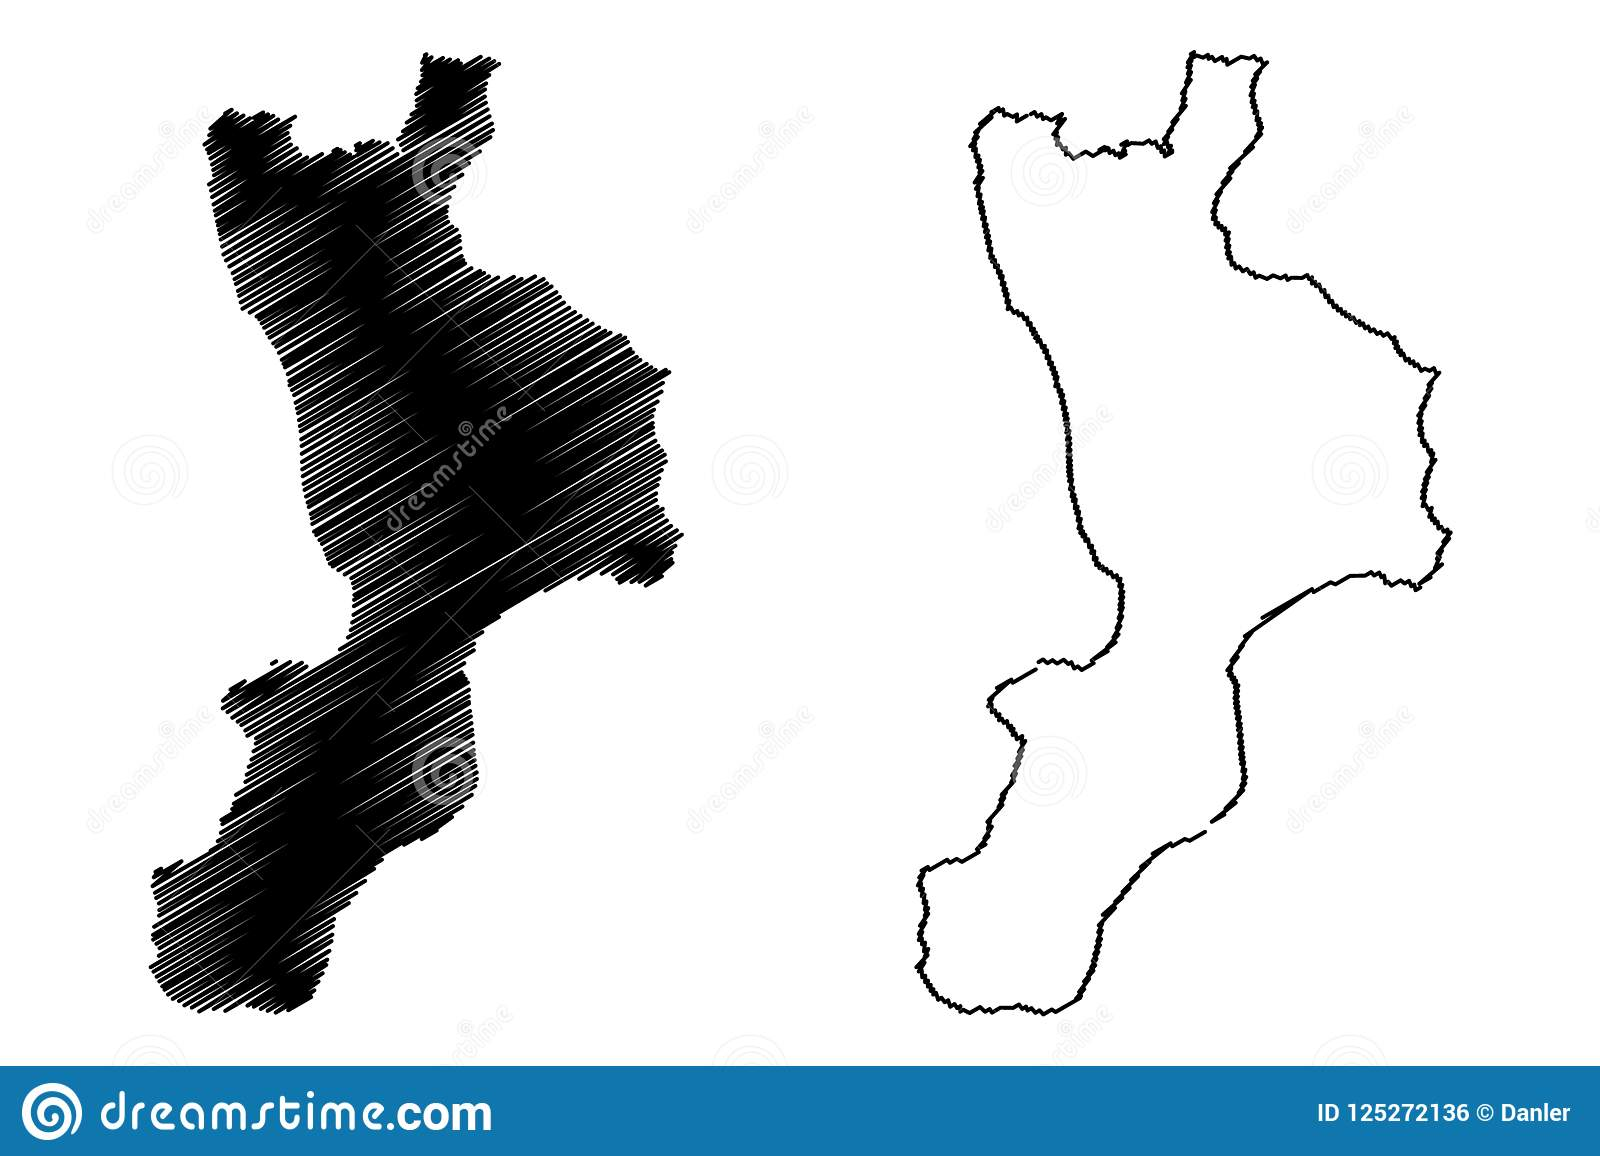 Calabria map vector stock vector. Illustration of flat ... on sicily italy map, cinque terre italy map, cambria italy map, campobasso italy map, cumae italy map, aosta valley italy map, azzurro italy map, sacco italy map, acireale italy map, formia italy map, baiae italy map, sardinia map, vatican city italy map, milan italy map, abruzzo italy map, salerno italy map, palermo map, potenza italy map, basilica italy map, regions of italy, naples italy map,